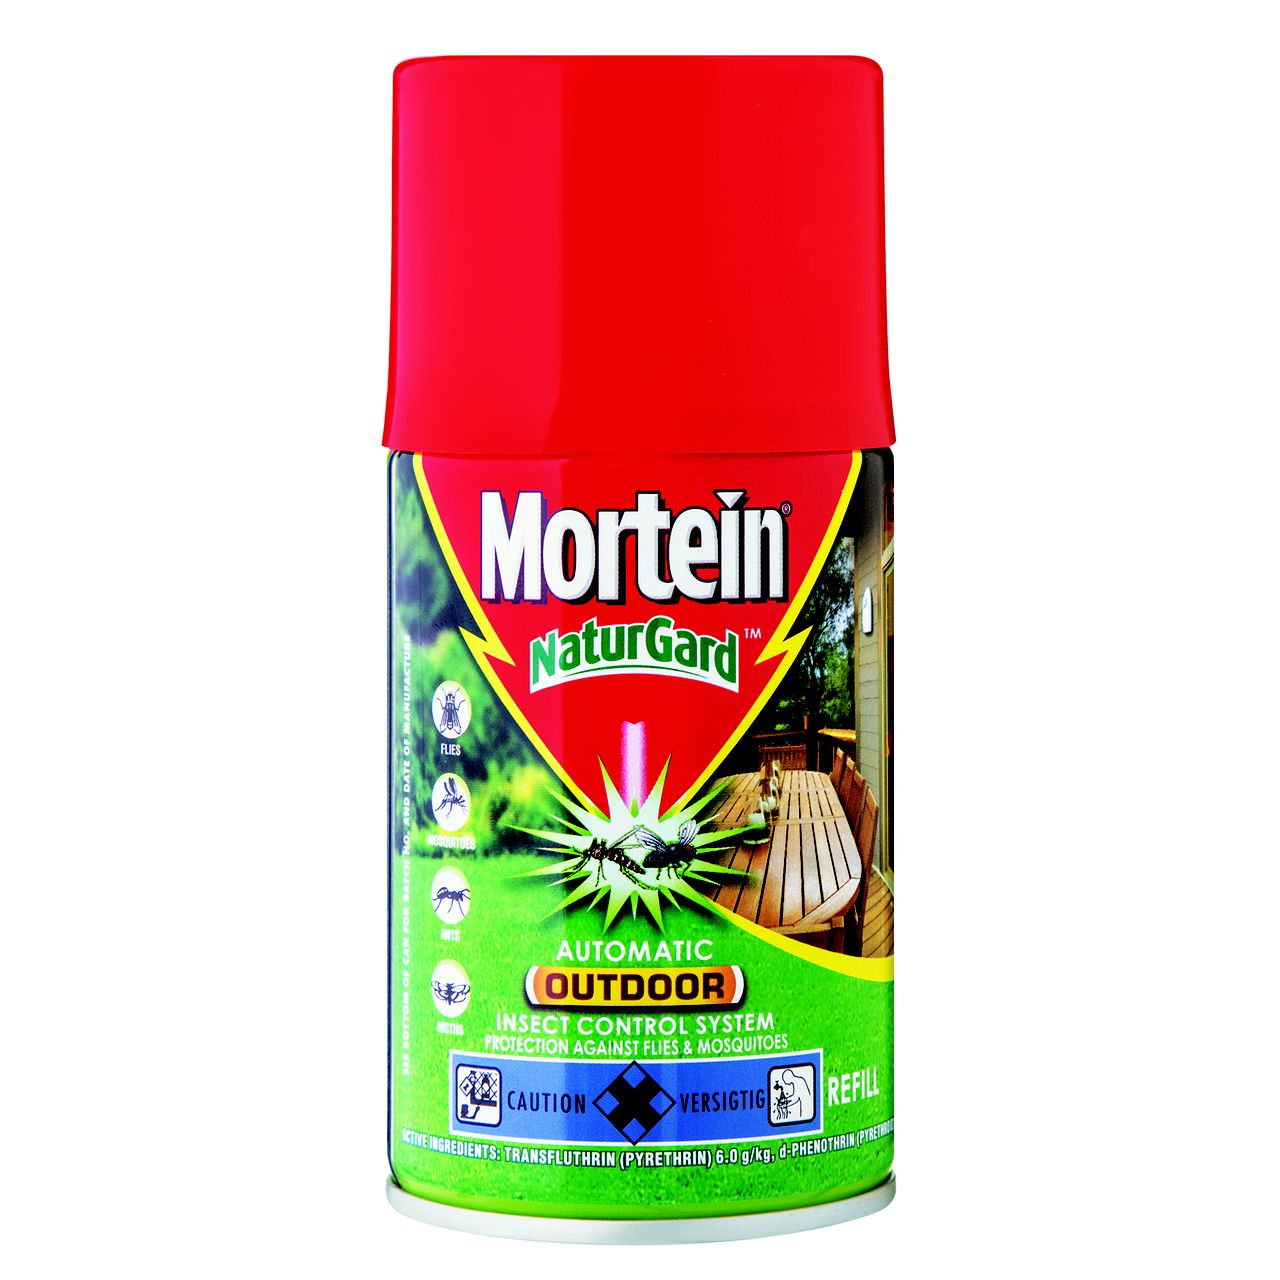 Buy This Now: MORTEIN AUTOMATIC CONTROL SYSTEM REFILL